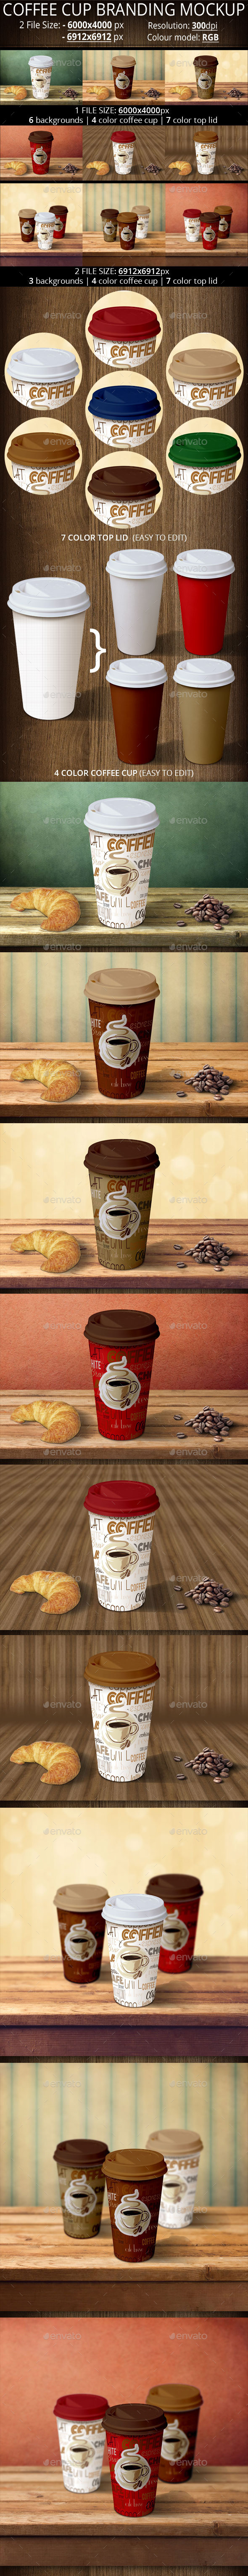 GraphicRiver Two Coffee Cup Branding Mockup 11541457